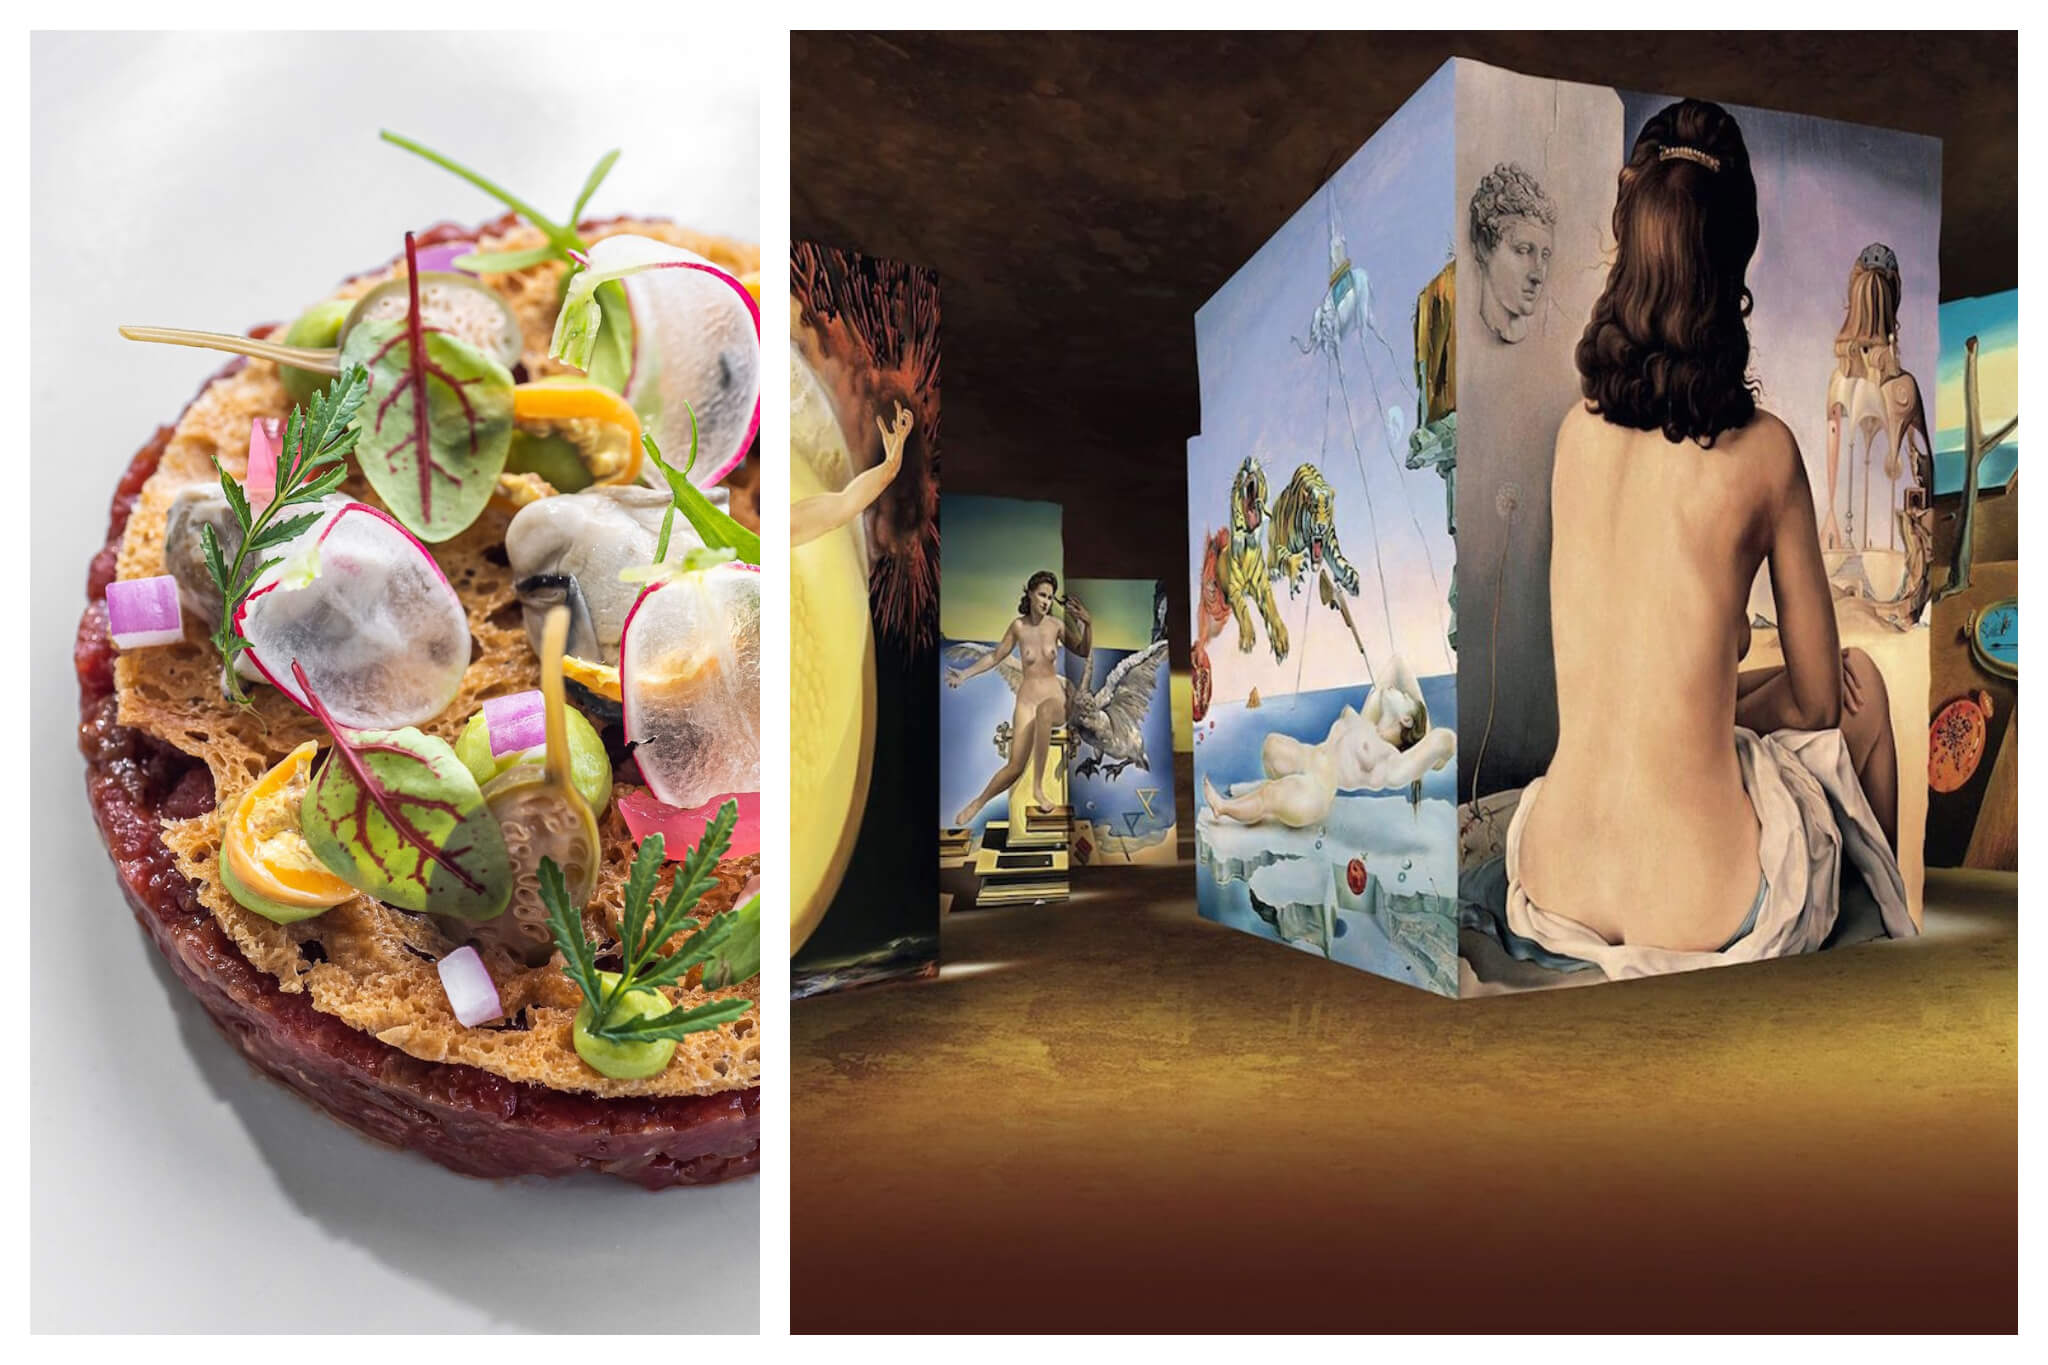 Left: A beautifully plated dish at the Micheling-starred L'Oustau de Baumanière, Right: Art is projected onto the walls of the Cerrières de Lumières art space in Arles.